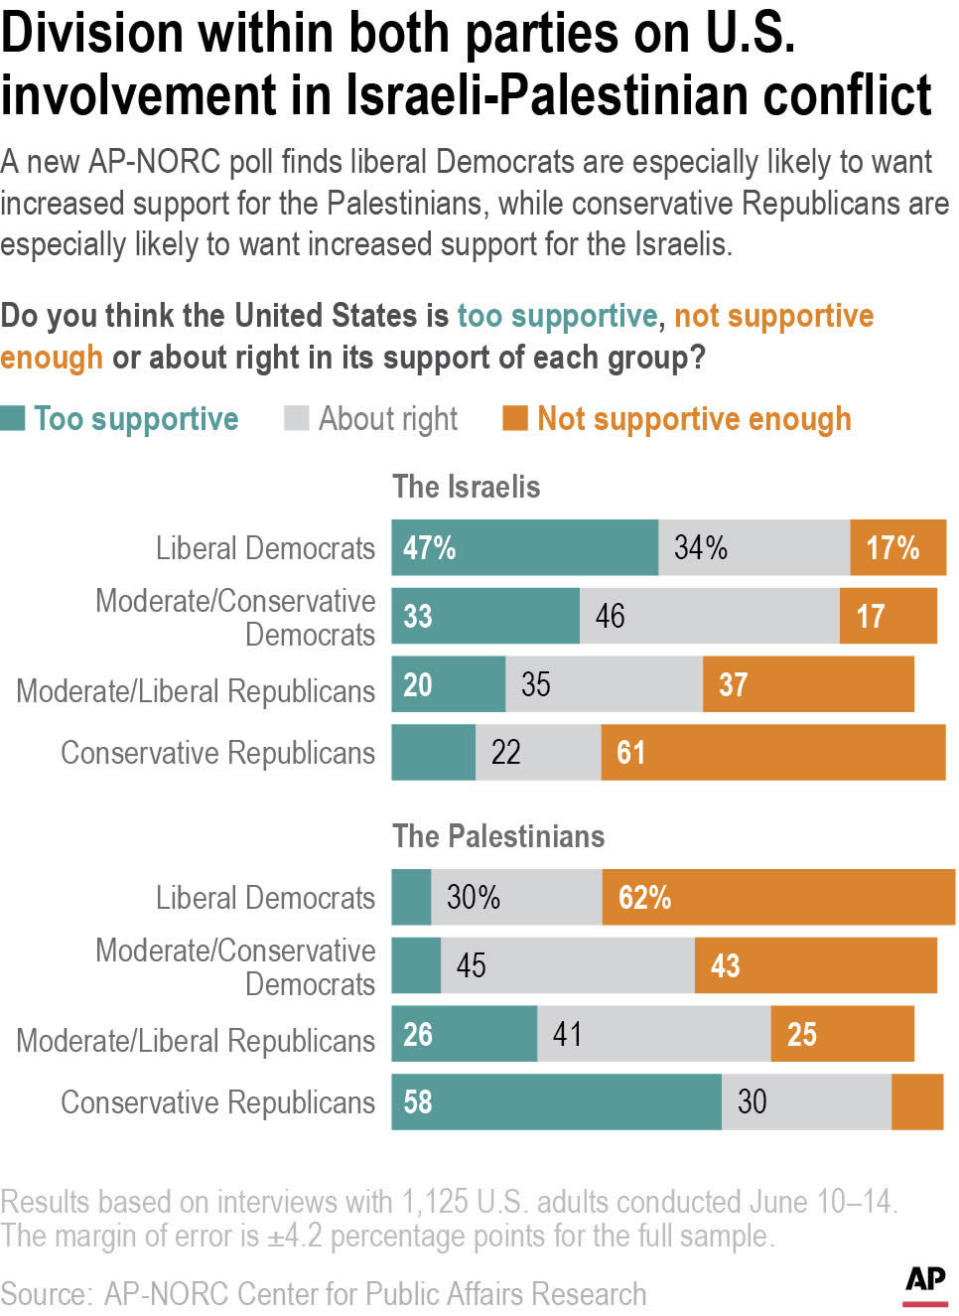 A new AP-NORC poll finds division within both parties on U.S. involvement in Israeli-Palestinian conflict.